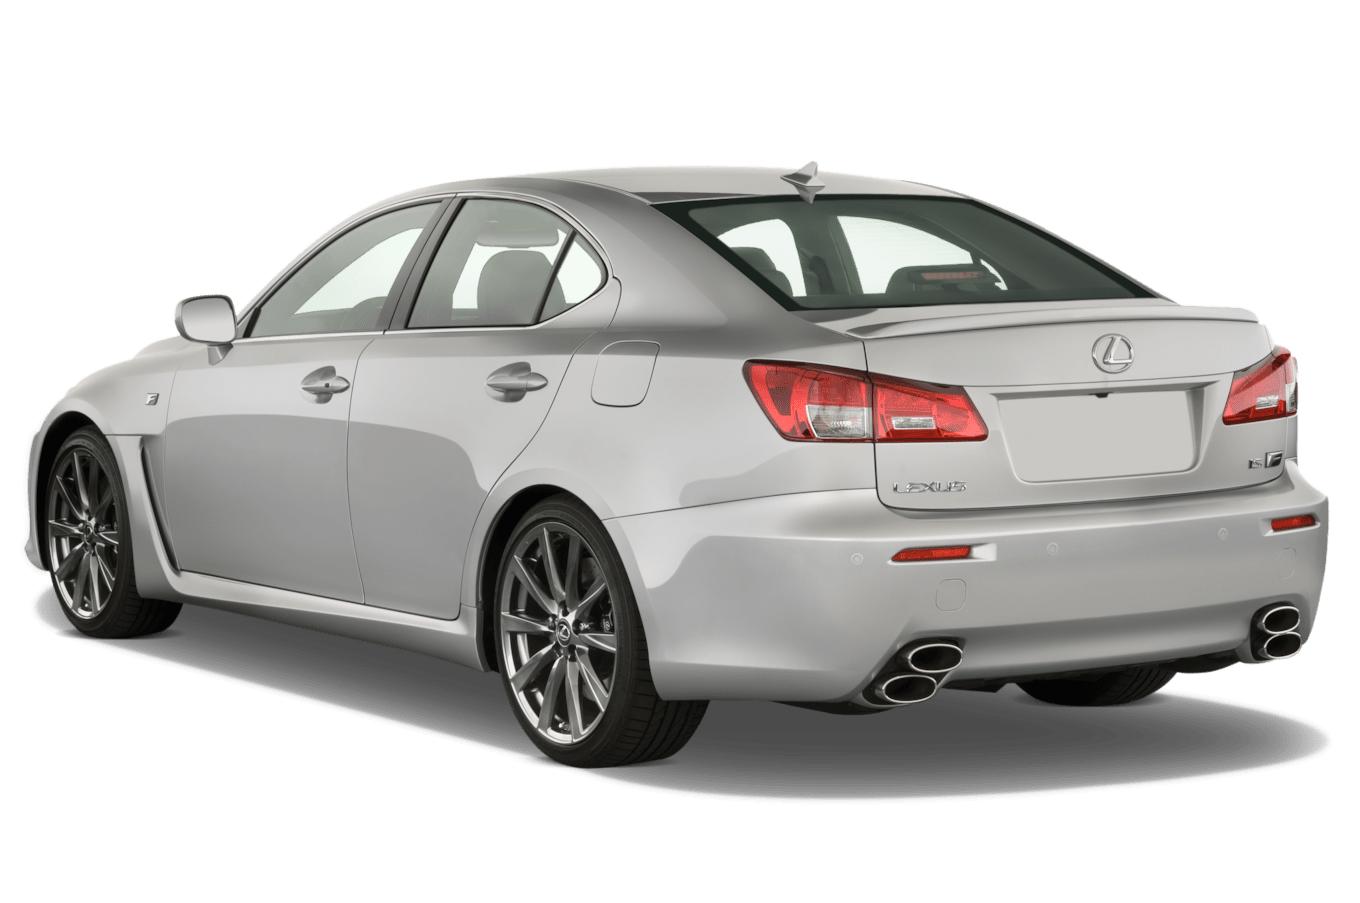 2010 Lexus IS250 Reviews and Rating